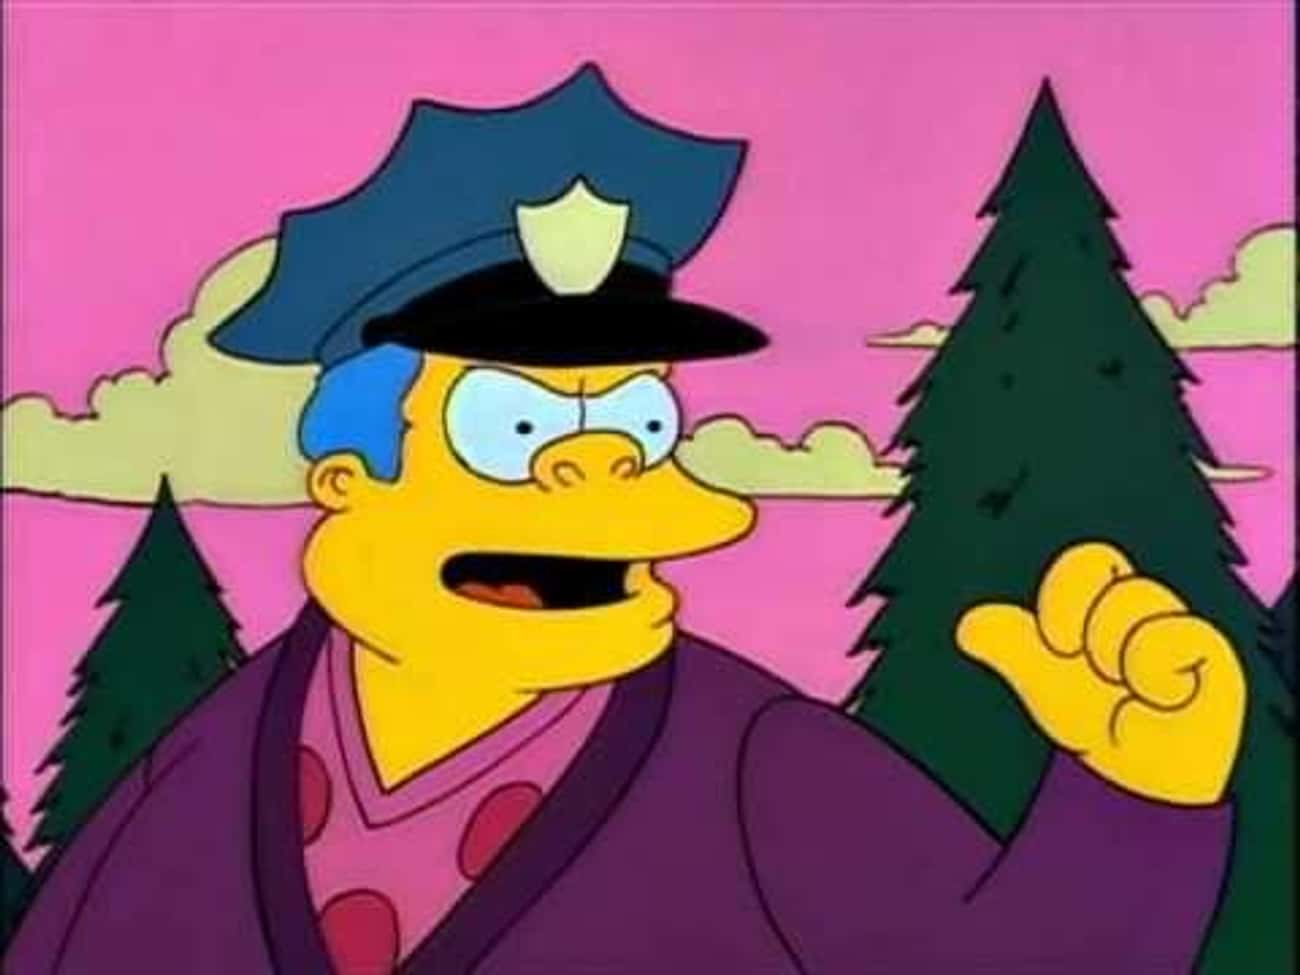 Bake 'Em Away, Toys is listed (or ranked) 2 on the list The Best Chief Wiggum Quotes From 'The Simpsons'